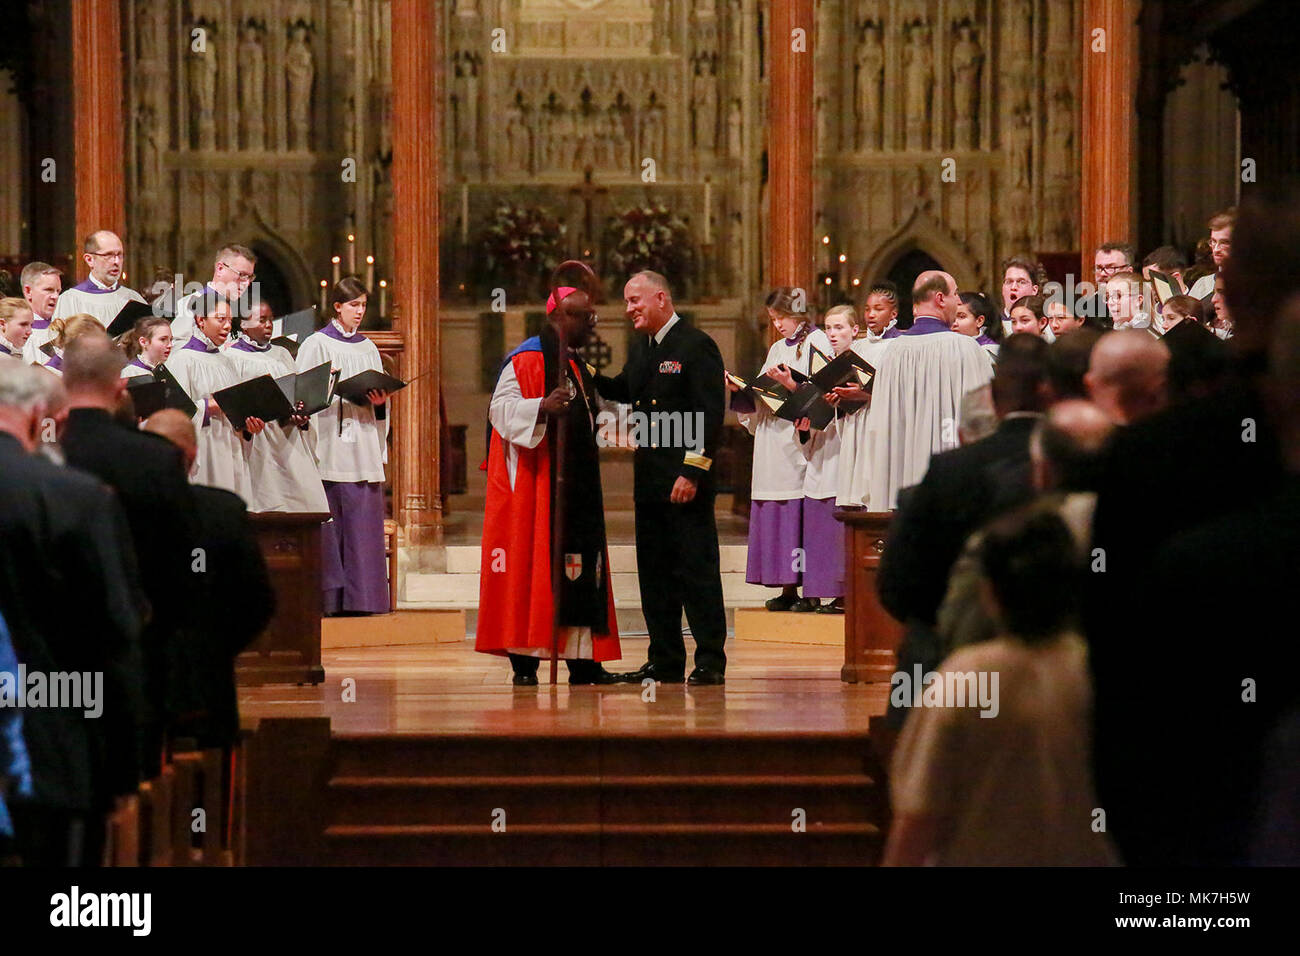 The 19th Chaplain of the Marine Corps, Rear Adm. Brent W. Scott, and the Bishop Suffragan for Armed Services and Federal Ministries, the Right Reverend Carl W. Wright, prepare to walk down center aisle at the conclusion of a Marine Corps Worship Service at the Washington National Cathedral, Washington D.C., Nov. 12, 2017. The service was held to commemorate the 242nd Anniversary of the Marine Corps. The 19th Chaplain of the Marine Corps, Rear Adm. Brent W. Scott, addressed his message to the guests in attendance. (Official U.S. Marine Corps photo by Cpl. Robert Knapp/Released) - Stock Image